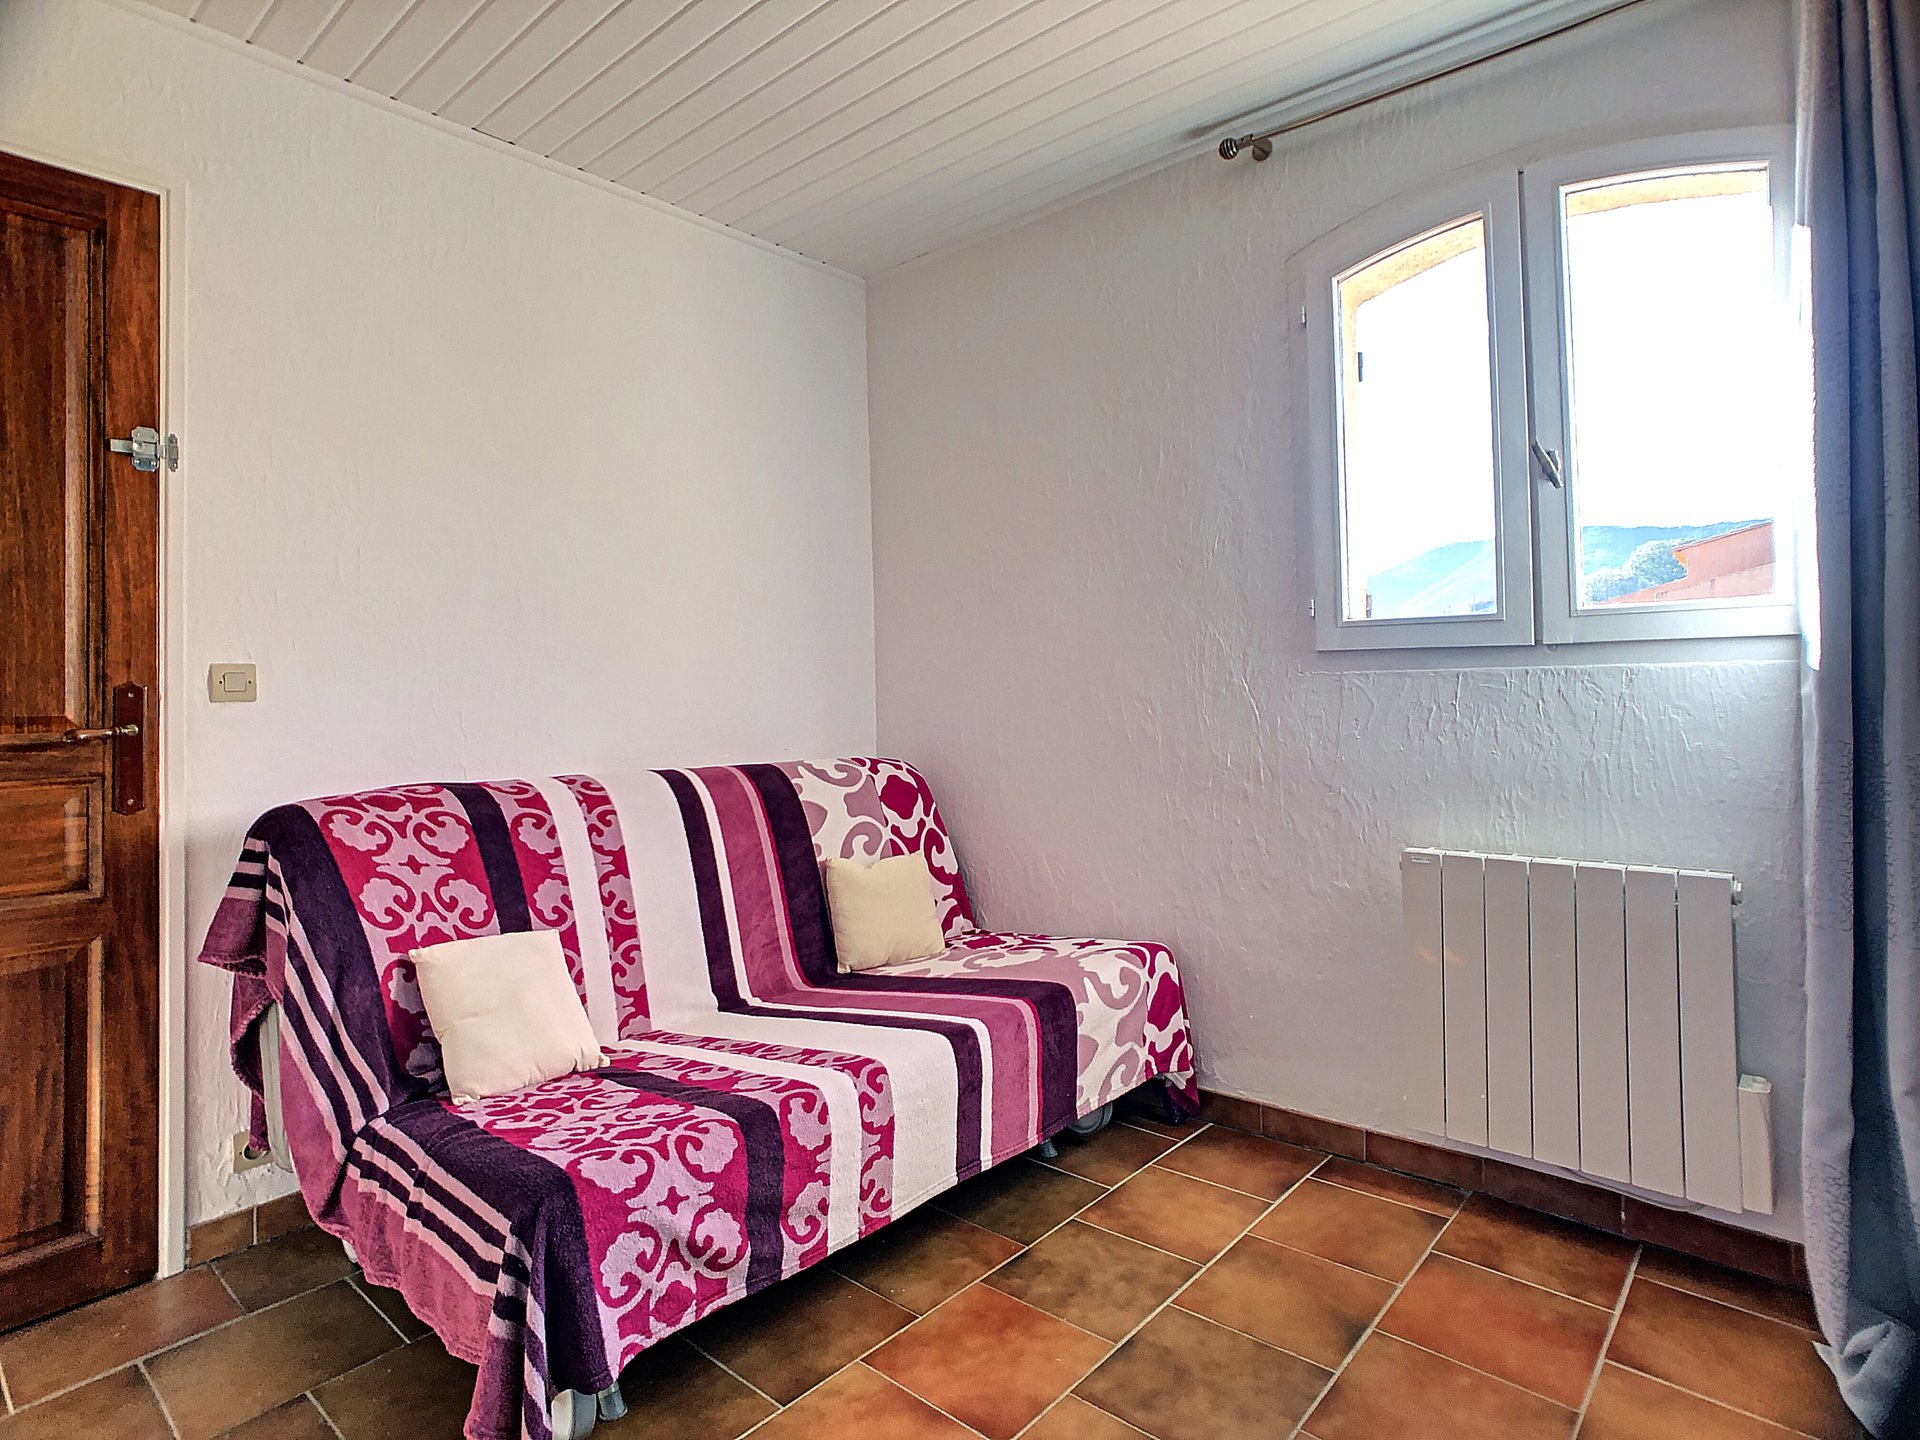 Pegomas, 3 Bedrooms house in a quiet area